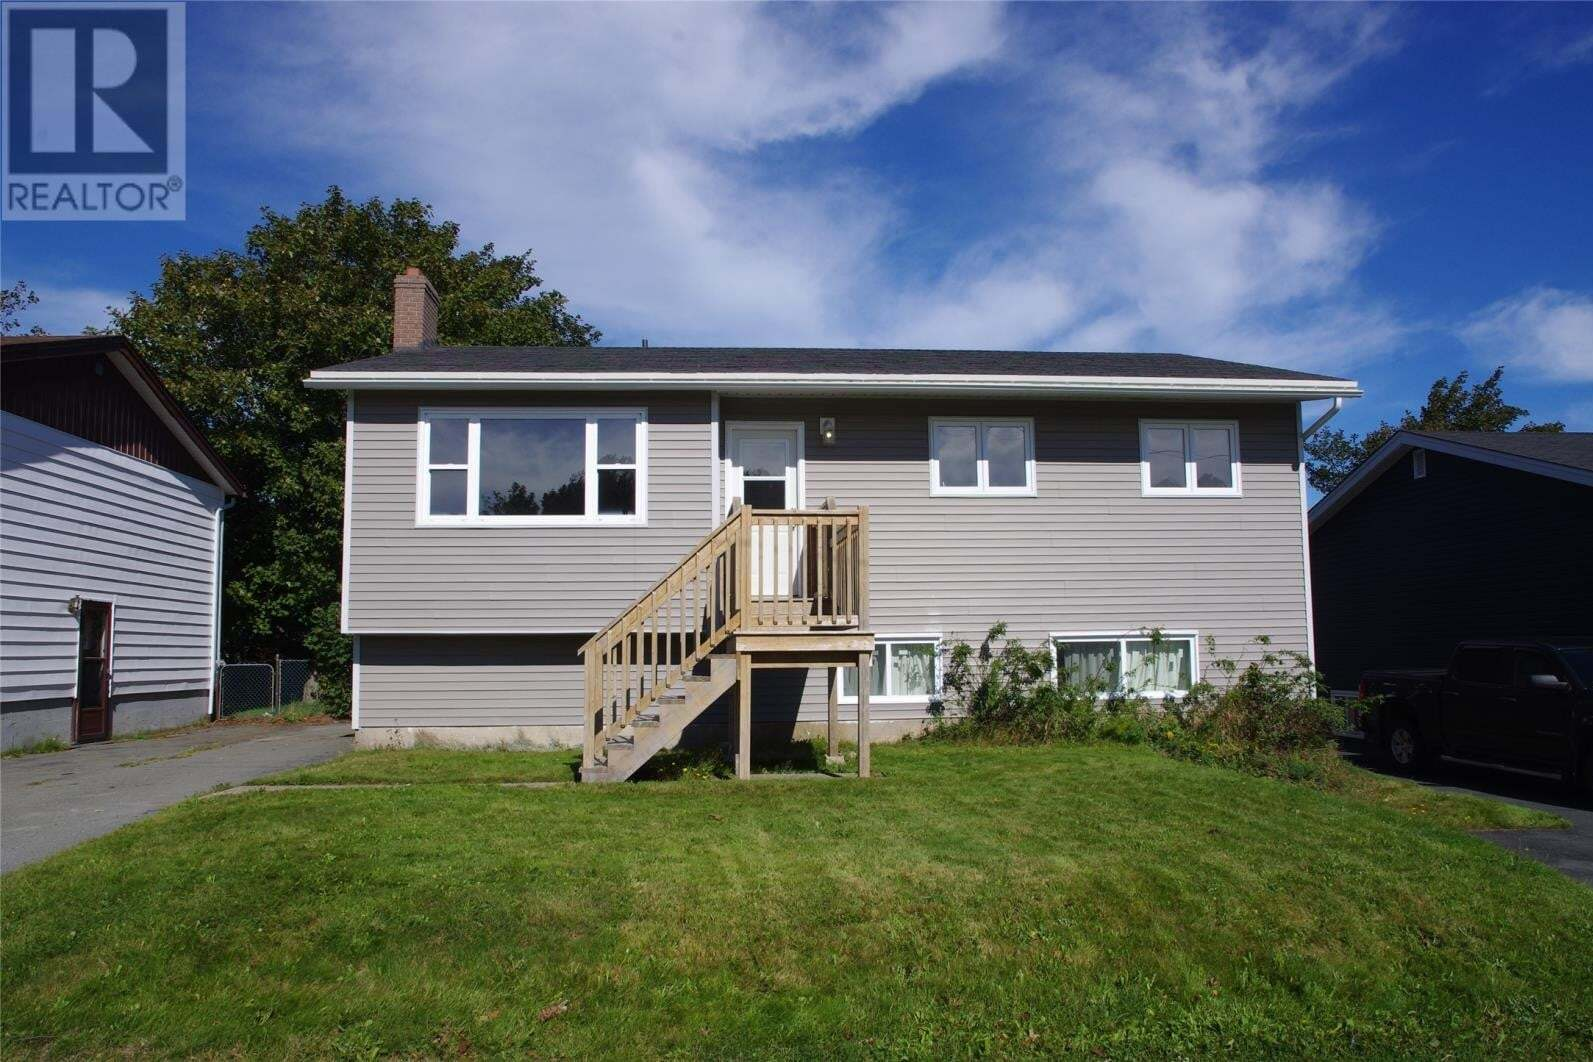 House for sale at 36 Ruth Ave Mount Pearl Newfoundland - MLS: 1221567